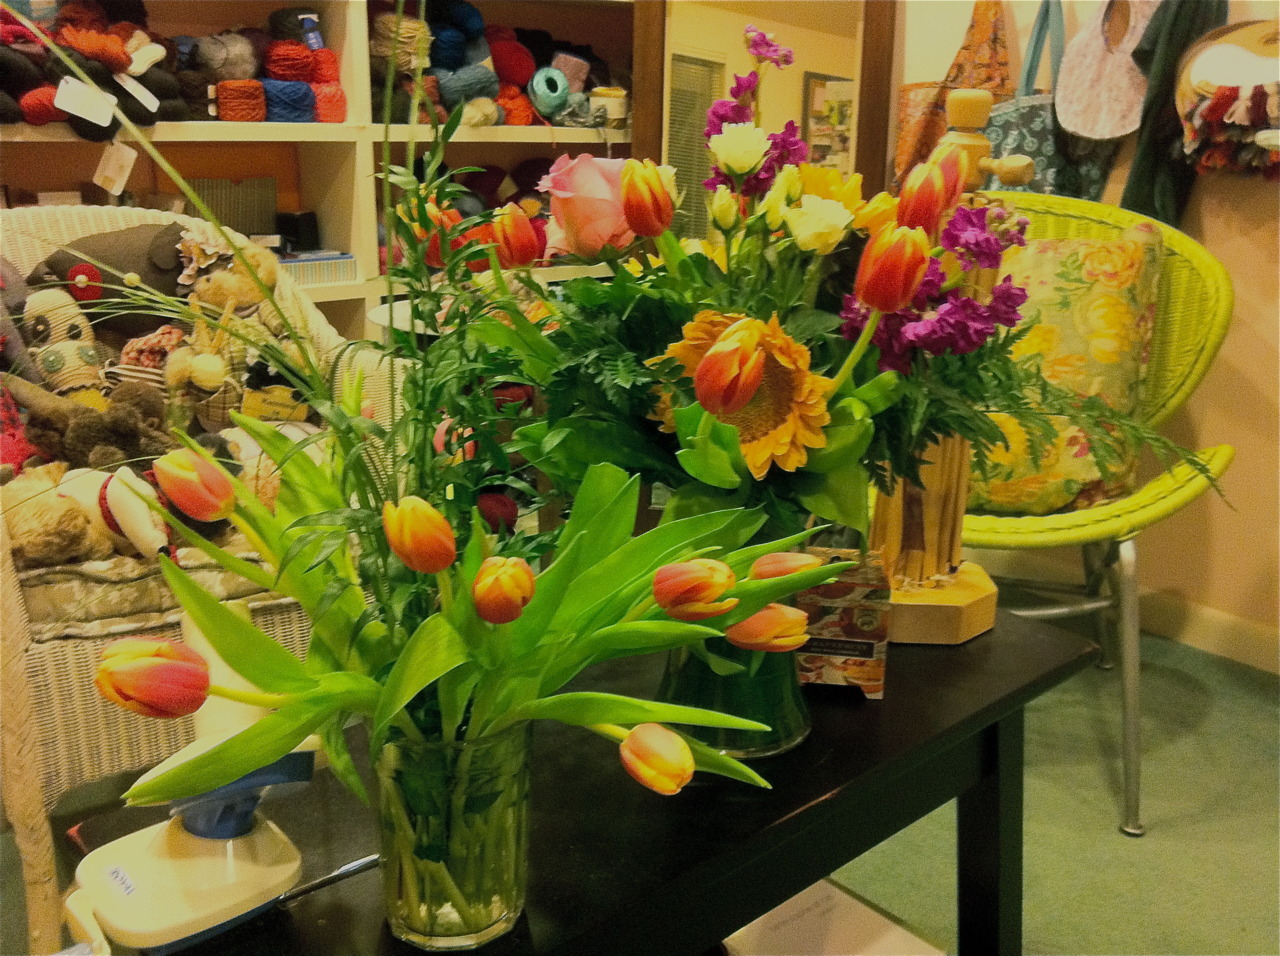 … there were flowers at the studio … beautiful ones … fragrant roses and cheerful tulips … as if smiles from gumby … i miss her so …